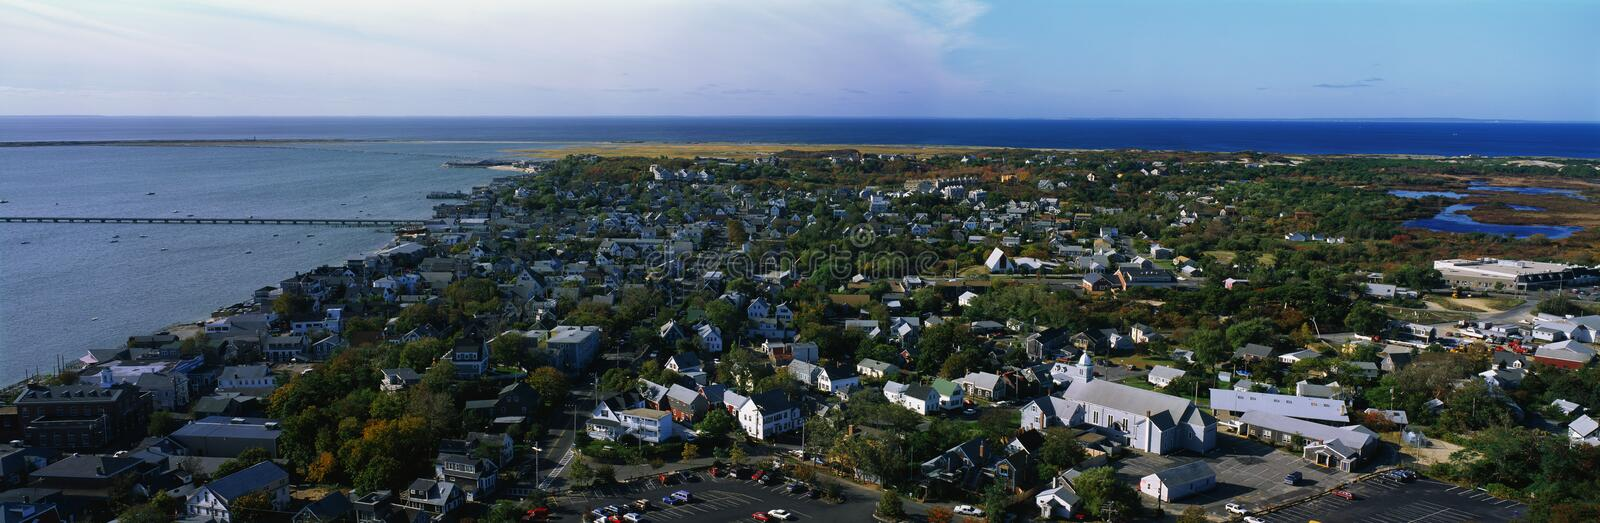 Download Aerial View Of Provincetown And Cape Cod, MA Stock Image - Image: 23151561